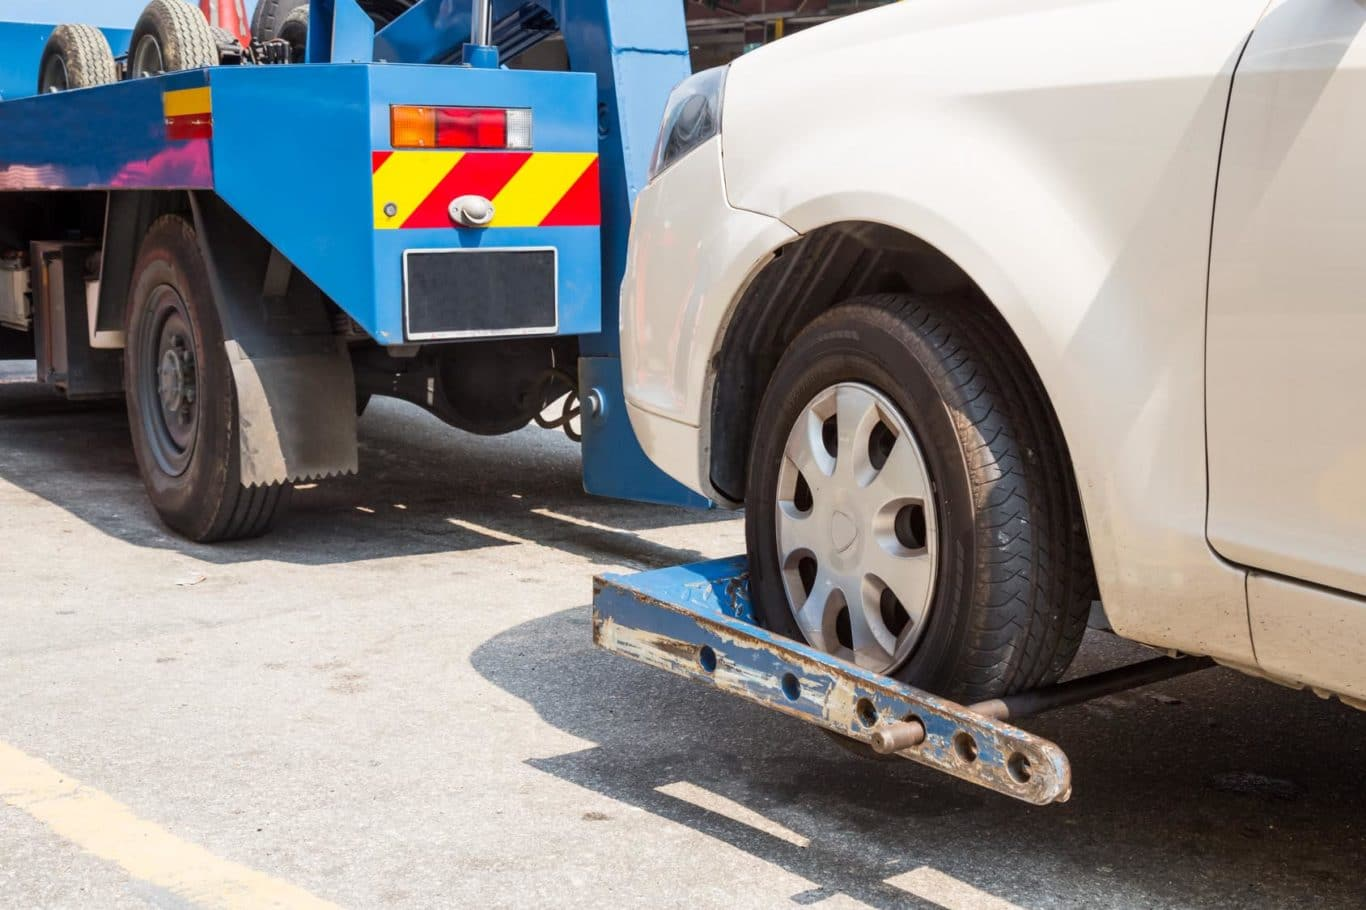 Knockbridge expert Roadside Assistance services